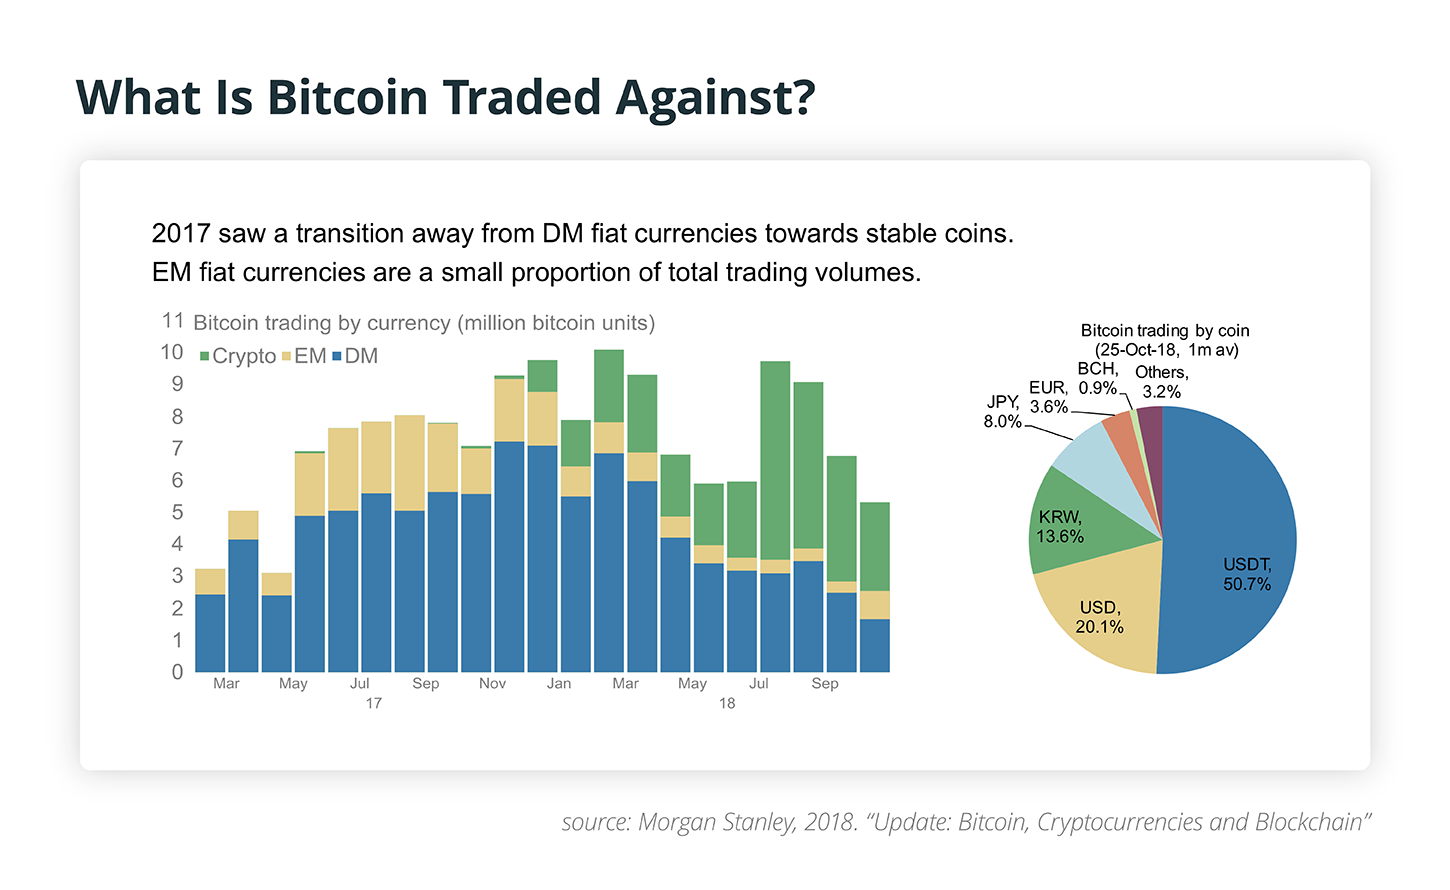 What Is Bitcoin Traded Against?